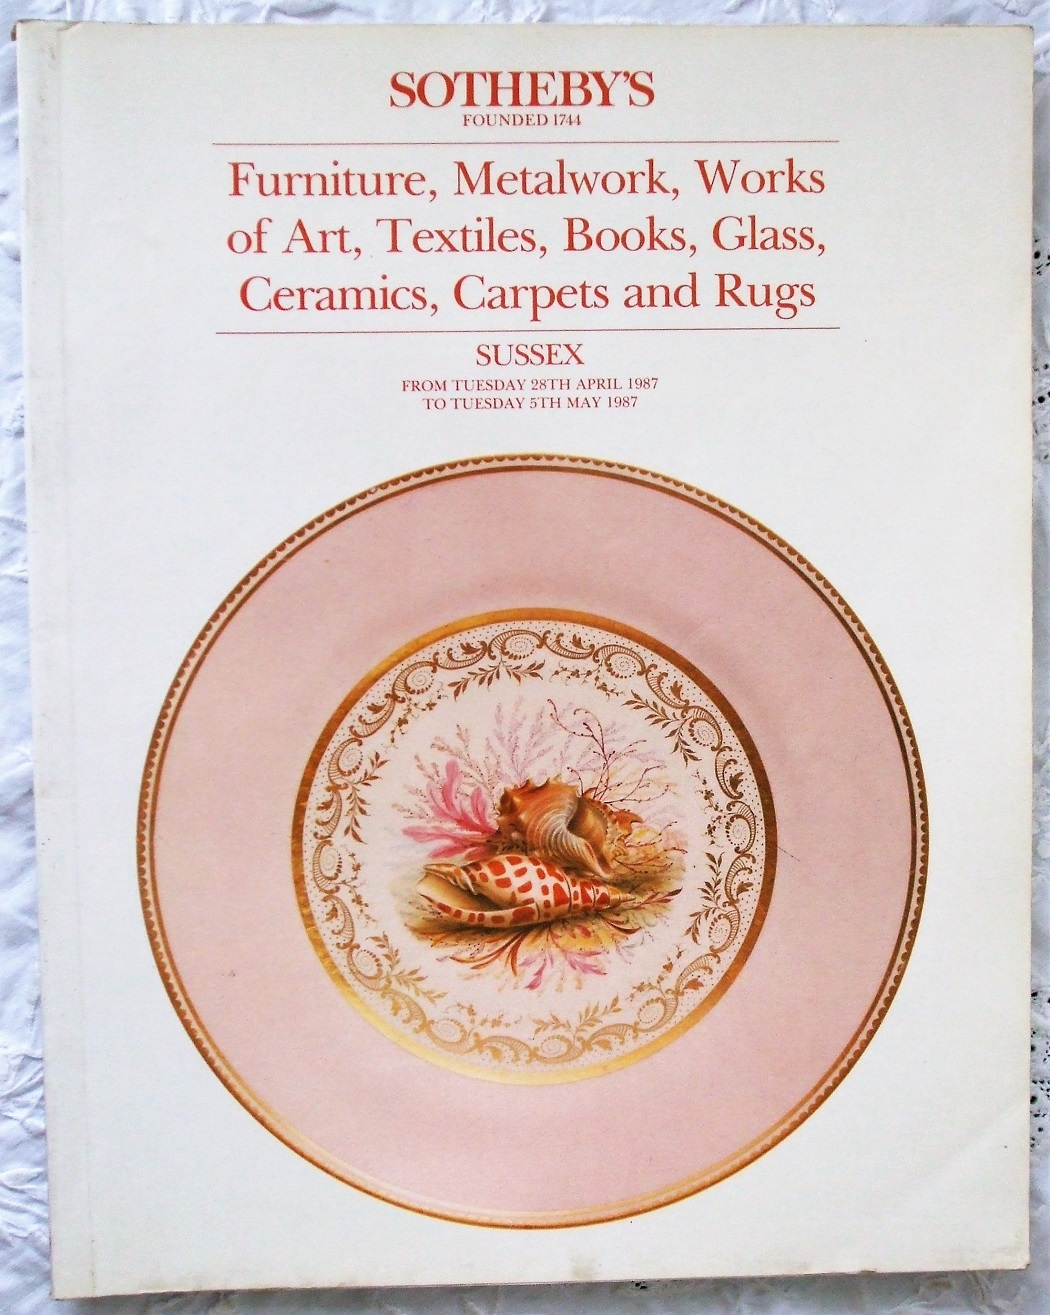 S Antiques and Collectables S 28. 04. to 05. 05. 1987